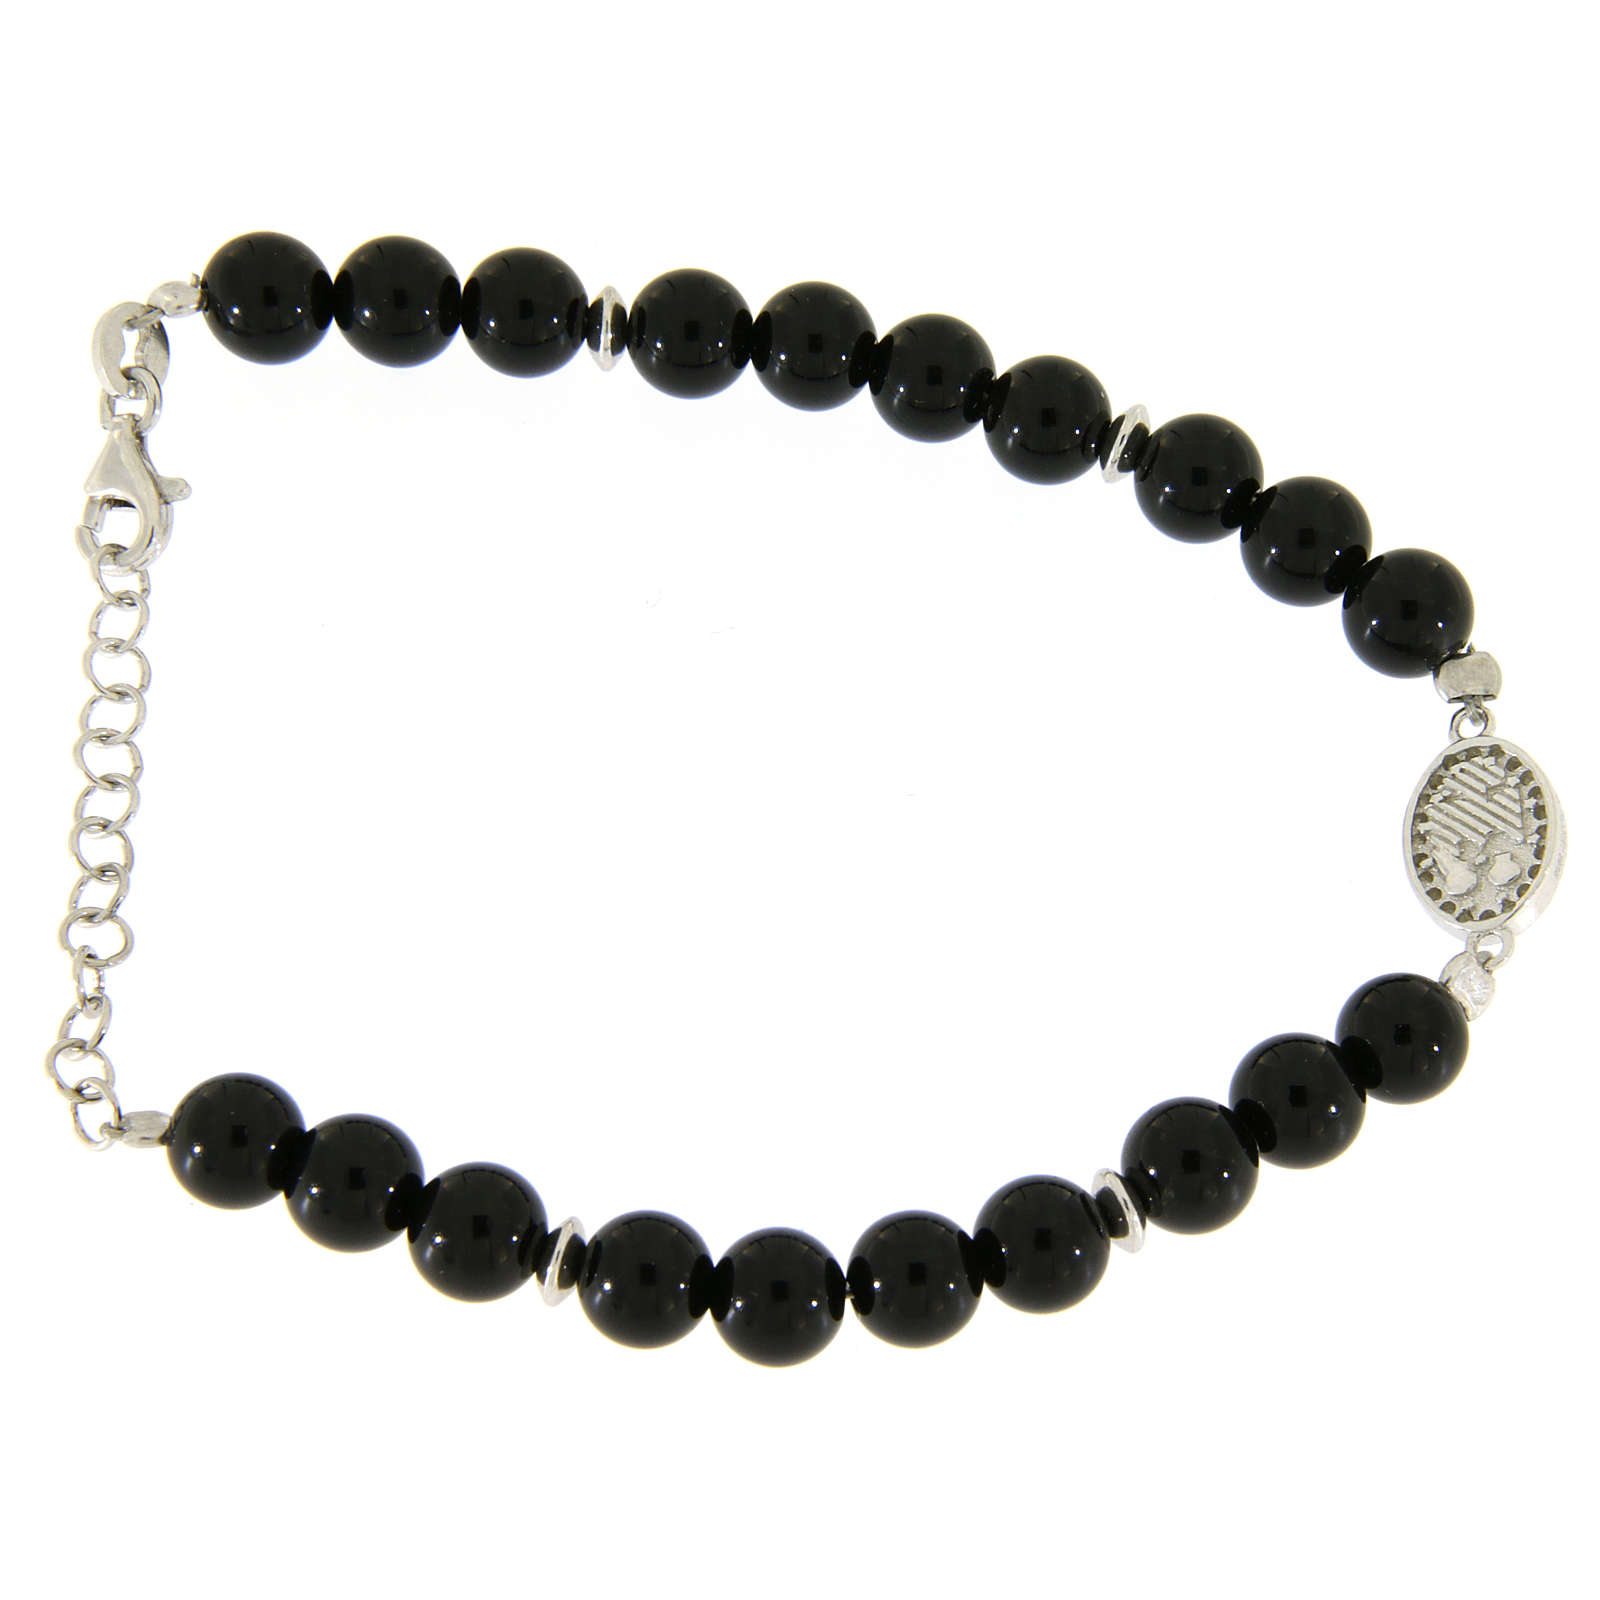 Bracelet with white and silver zircons, Saint Rita medal and black onyx beads 4